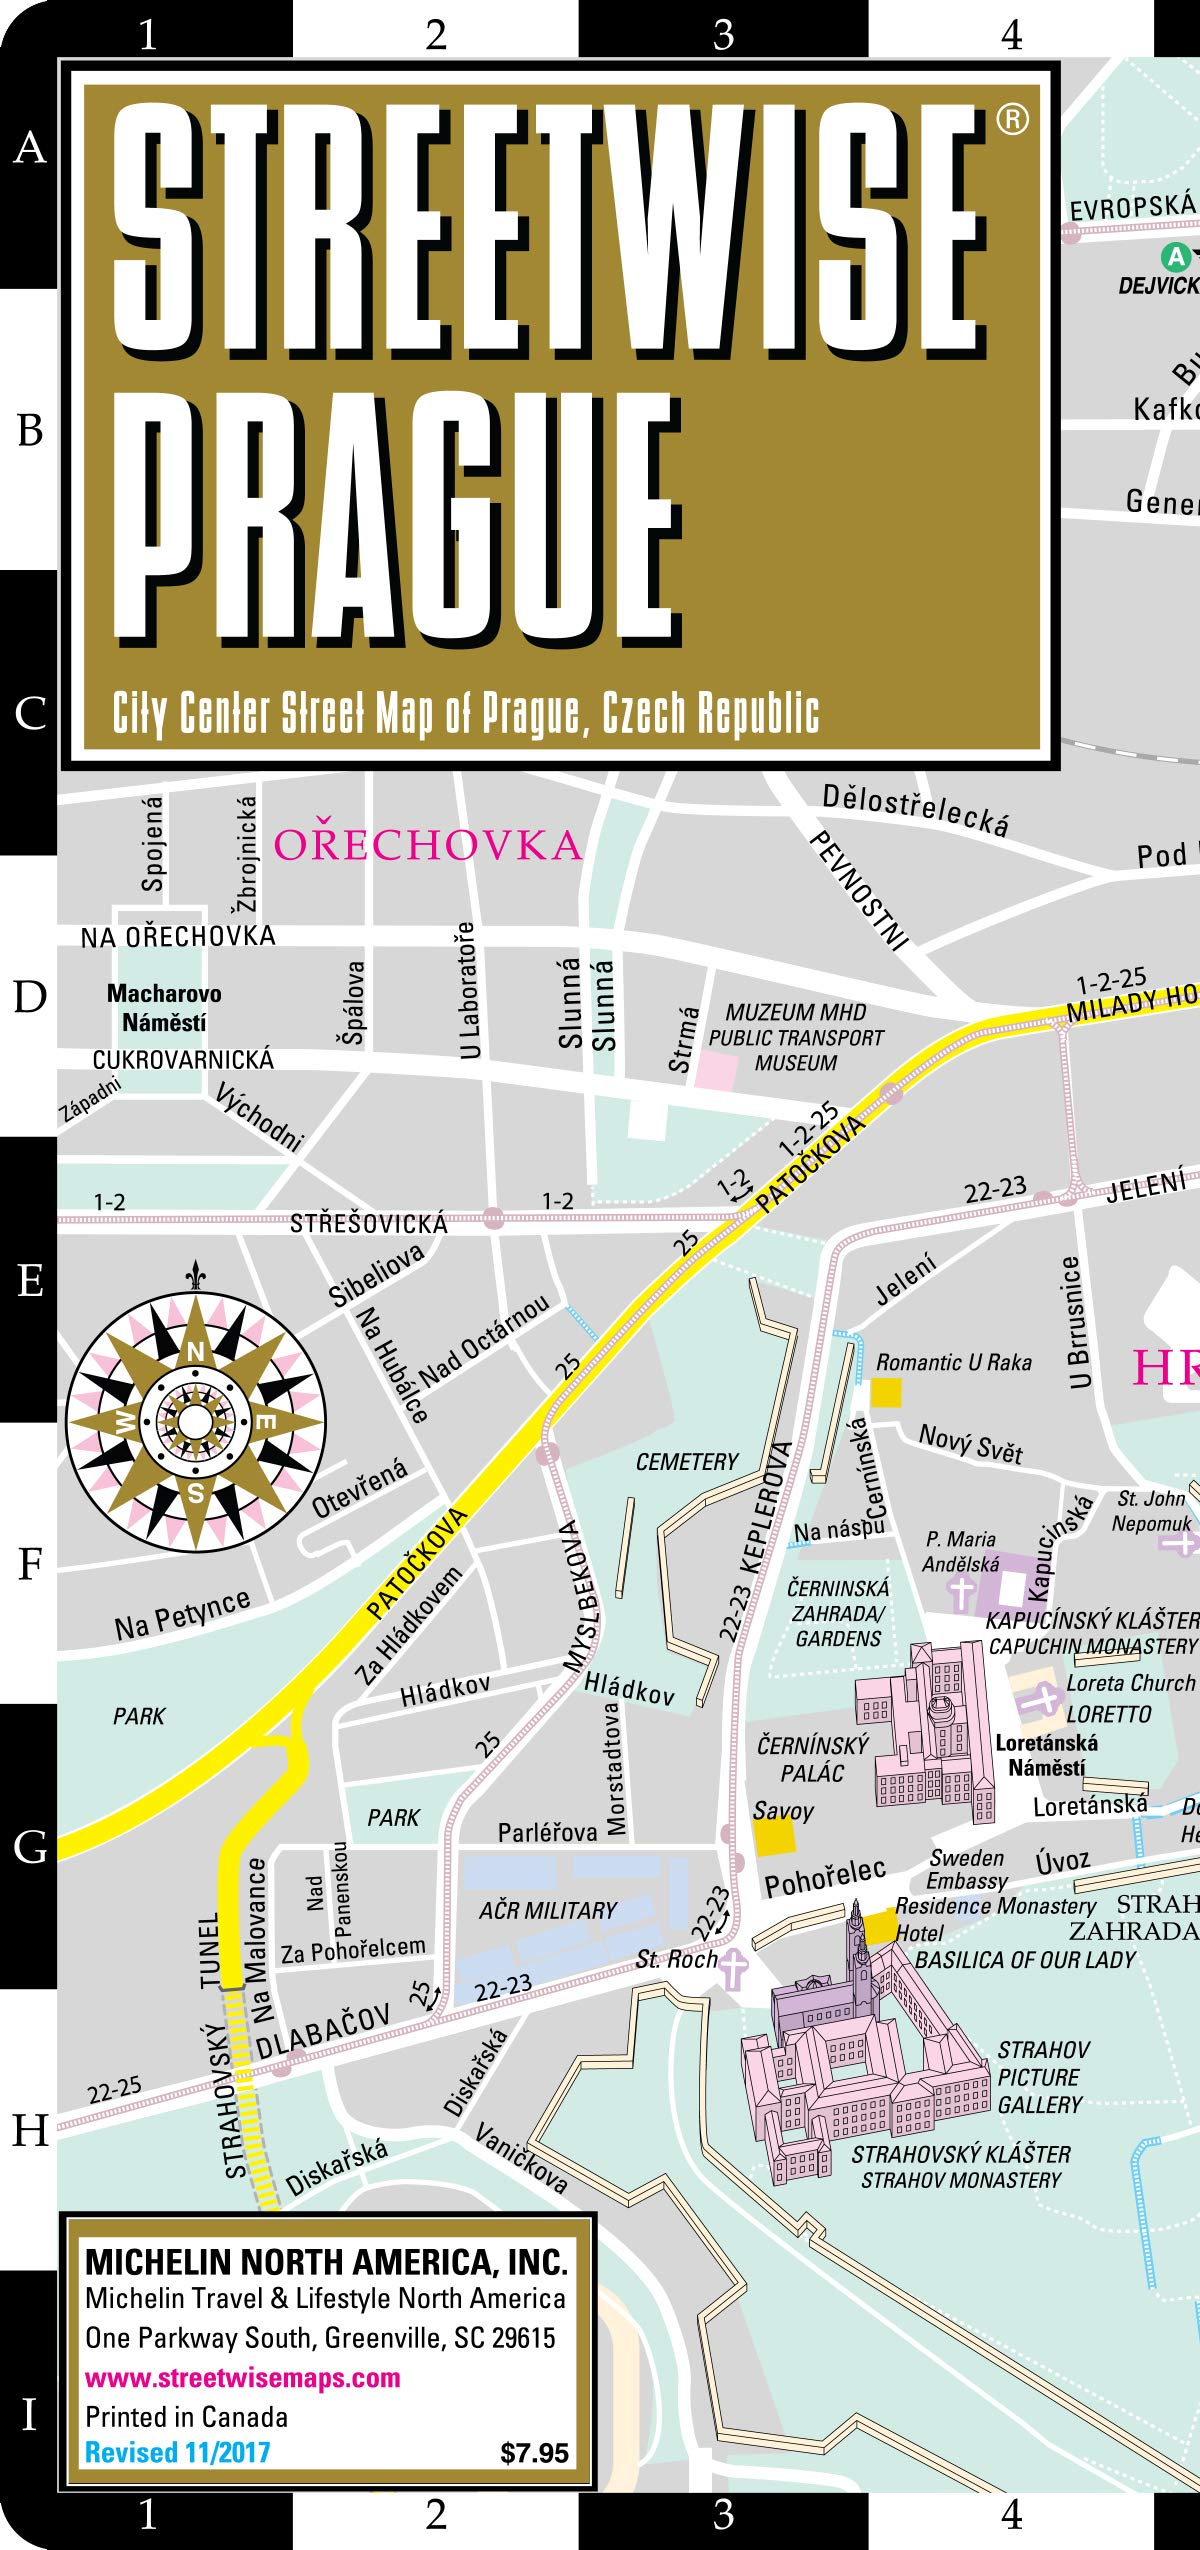 Streetwise Prague Map - Laminated City Center Street Map of ...